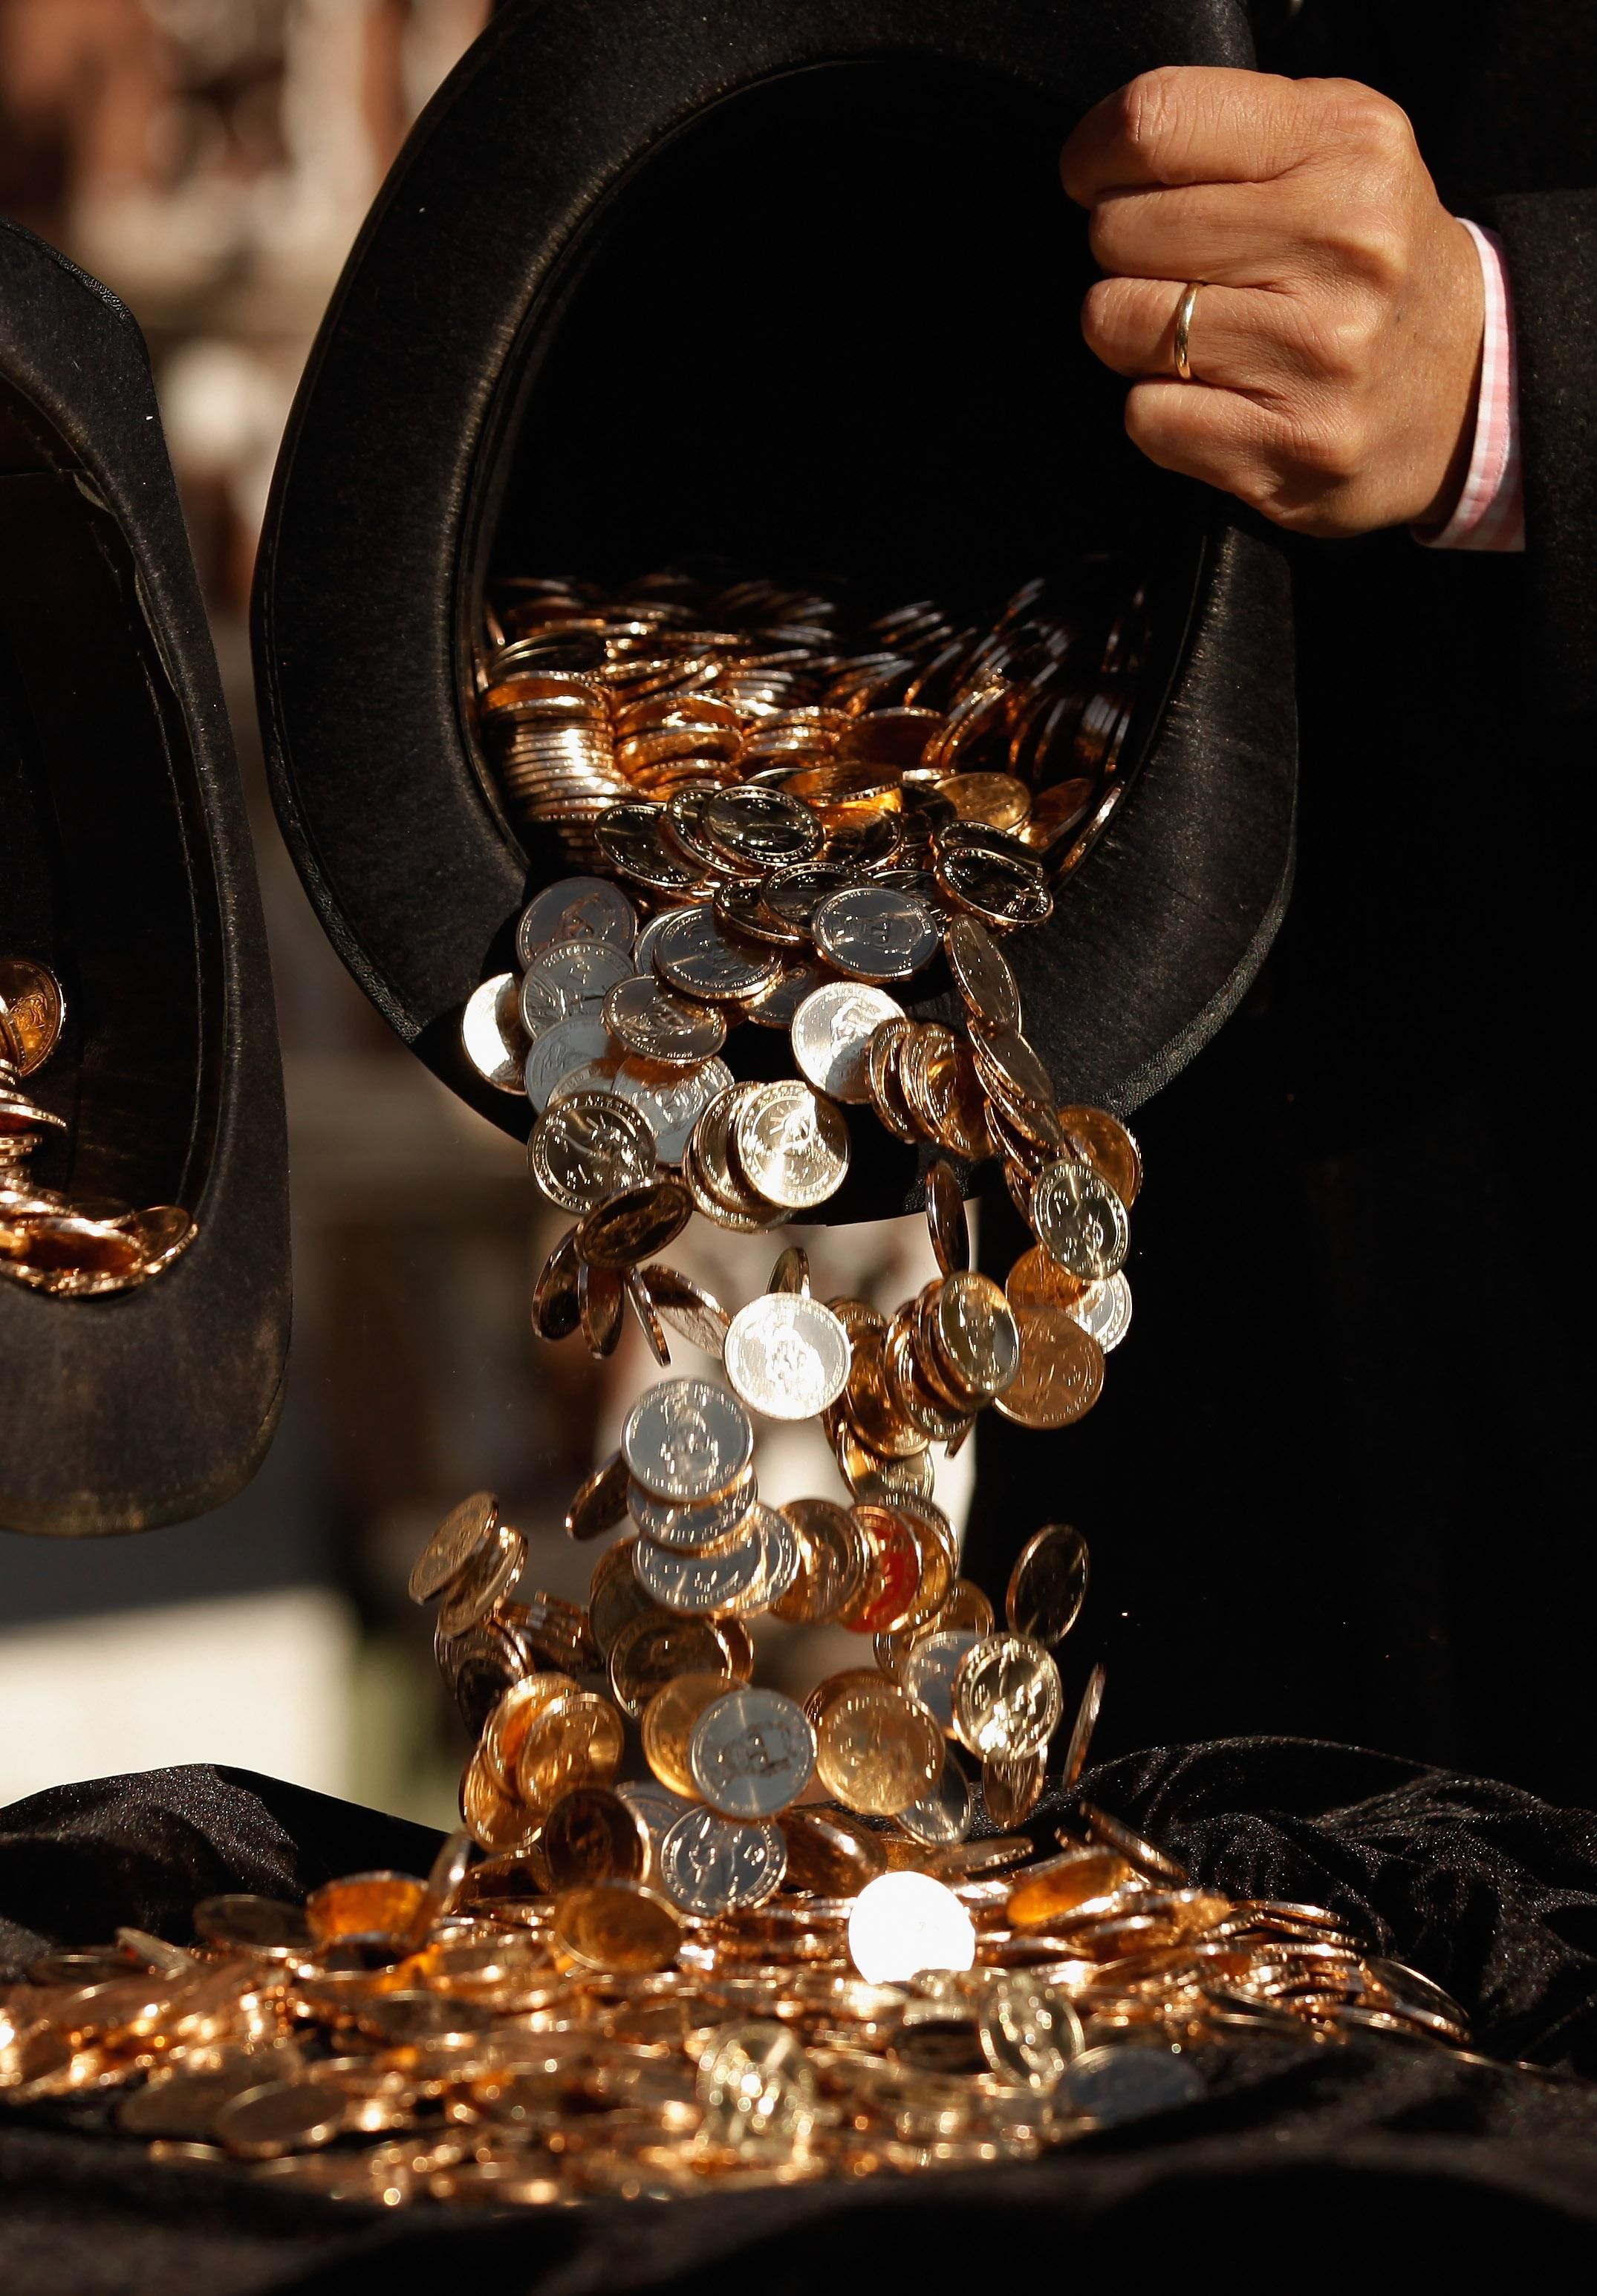 Stack of coins.